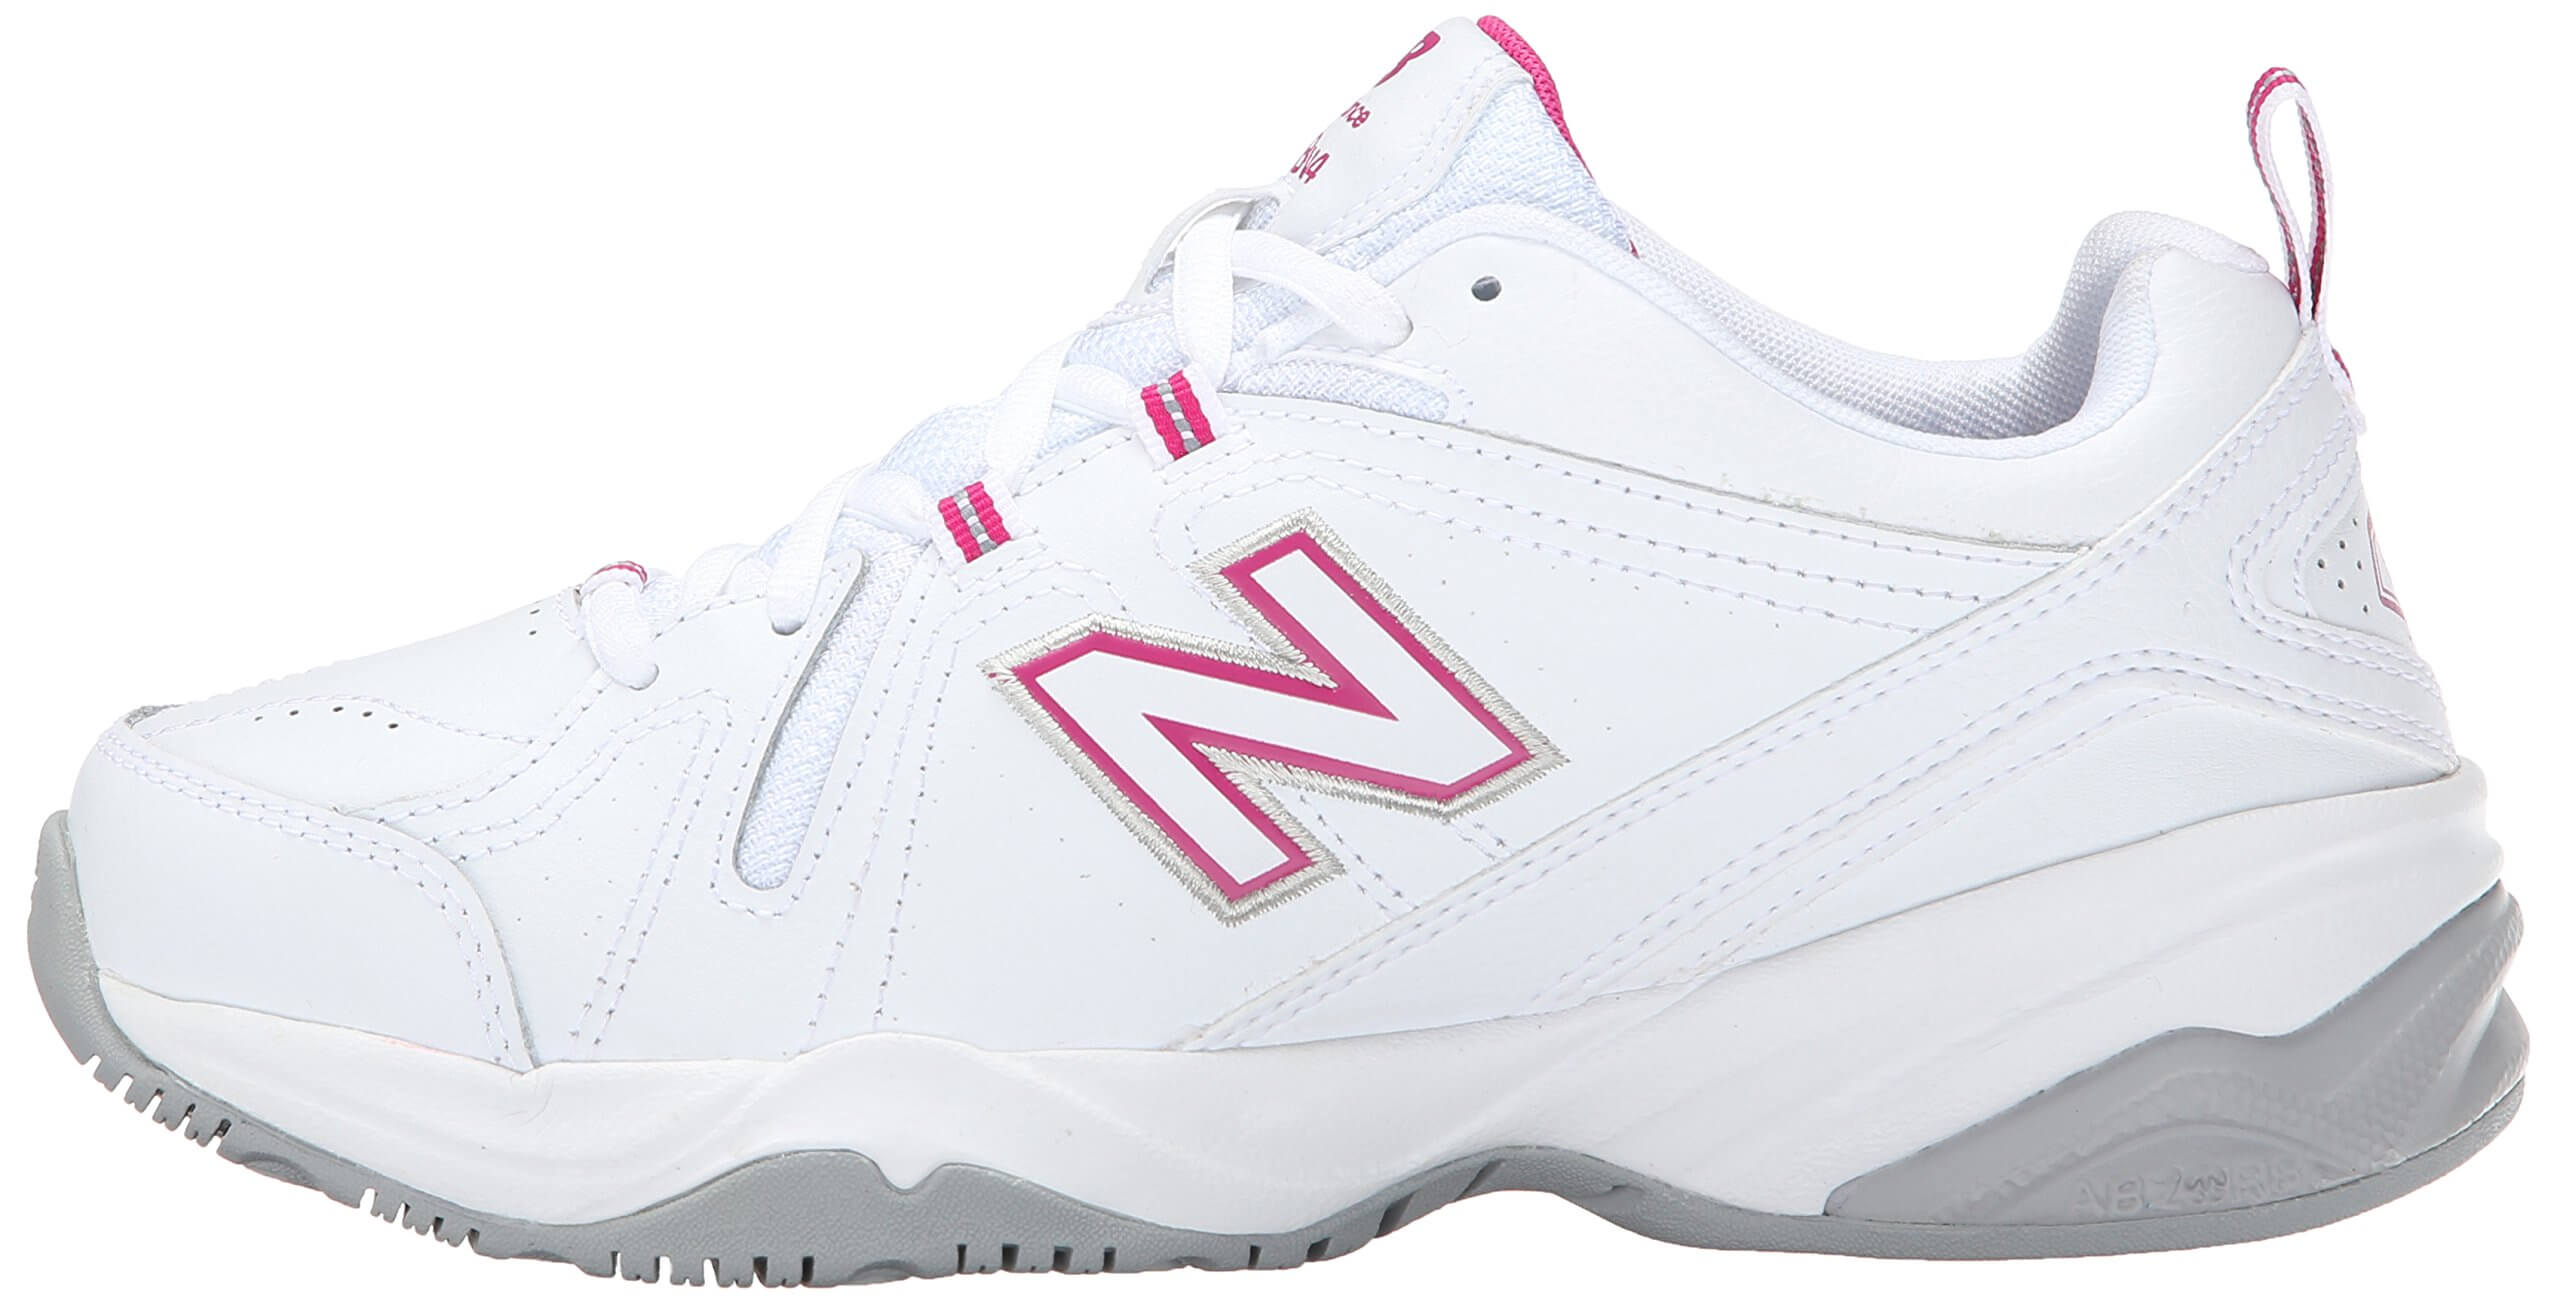 Best New Balance Walking Shoes For Nurses